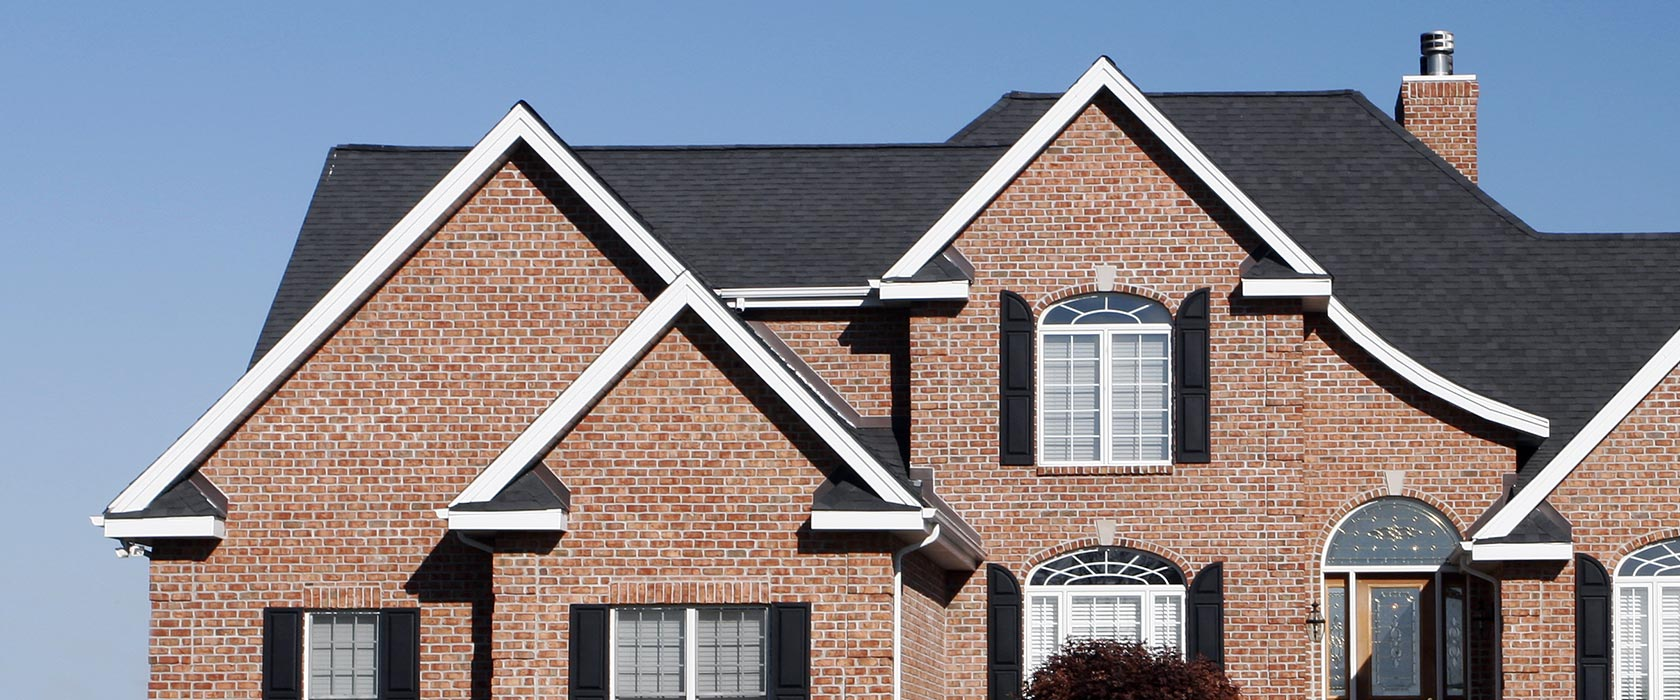 New Homes In Greensboro And High Point Nc